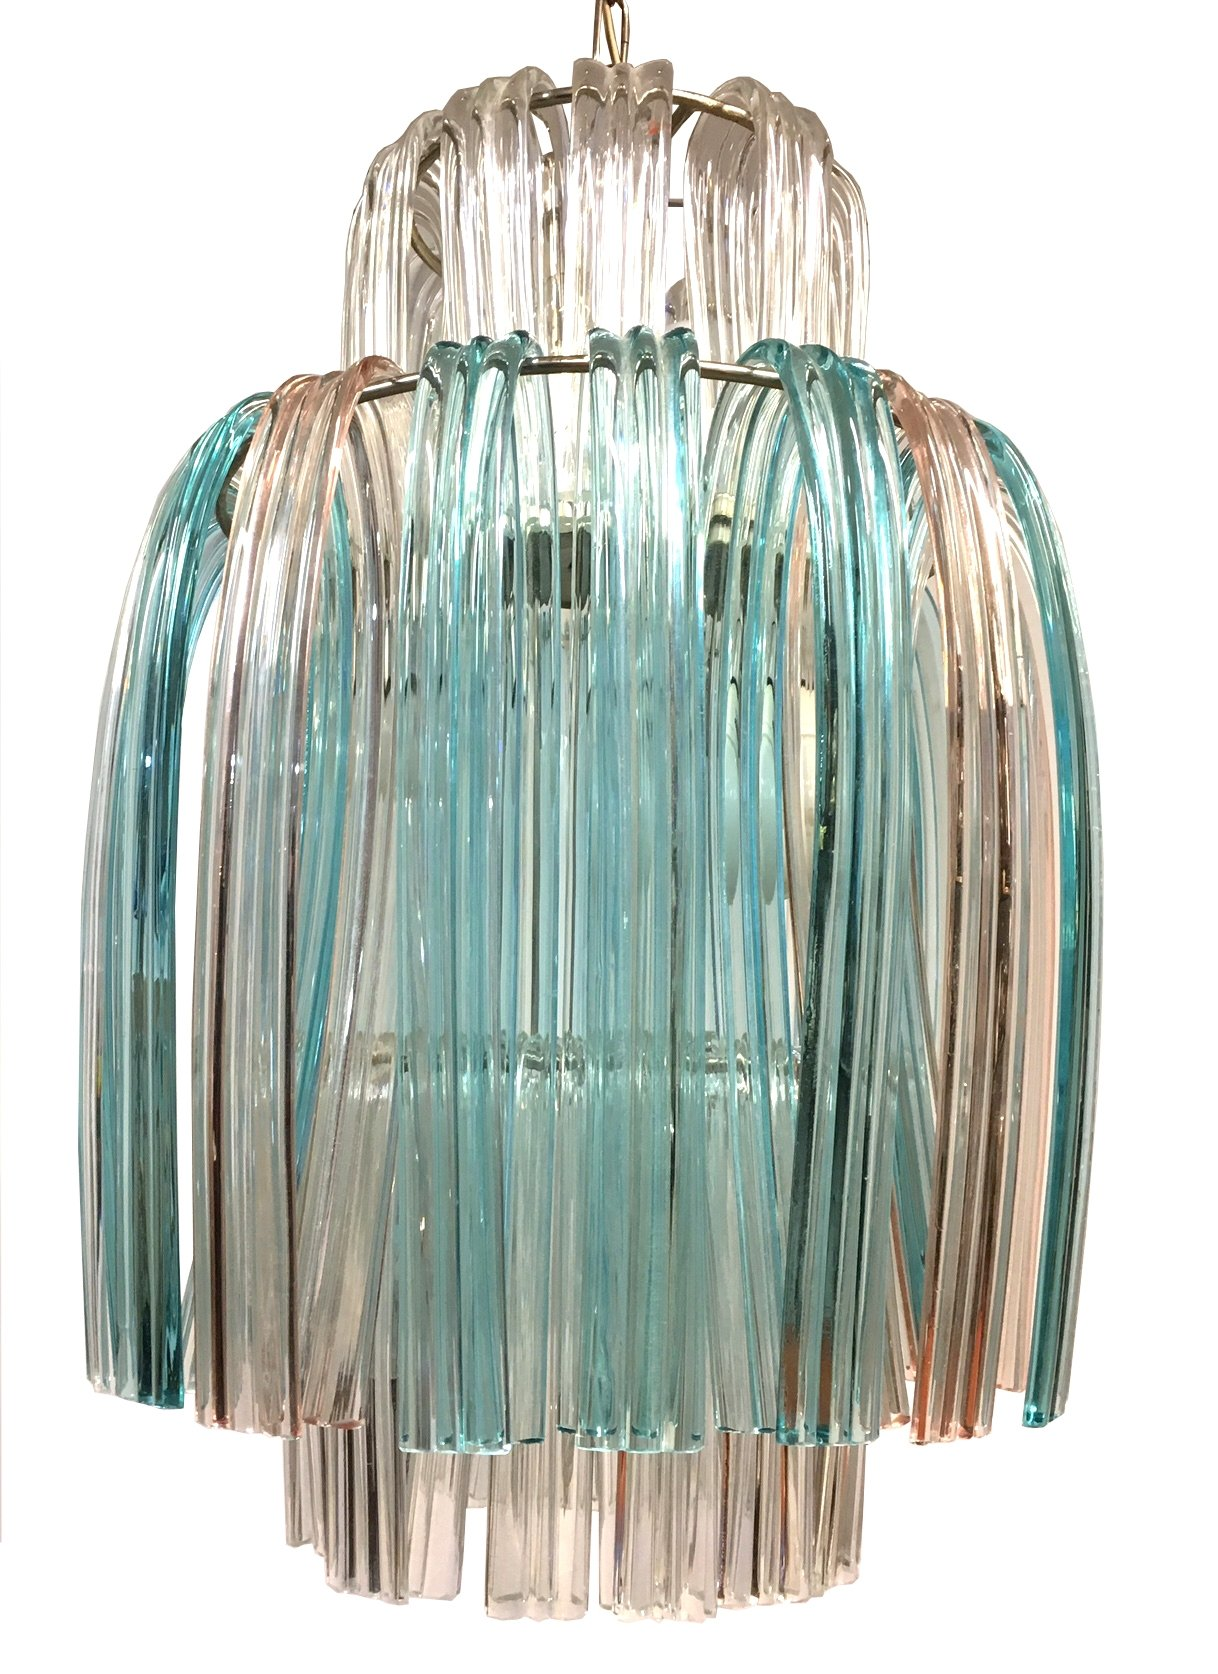 Murano glass Jellyfish chandelier 1960s